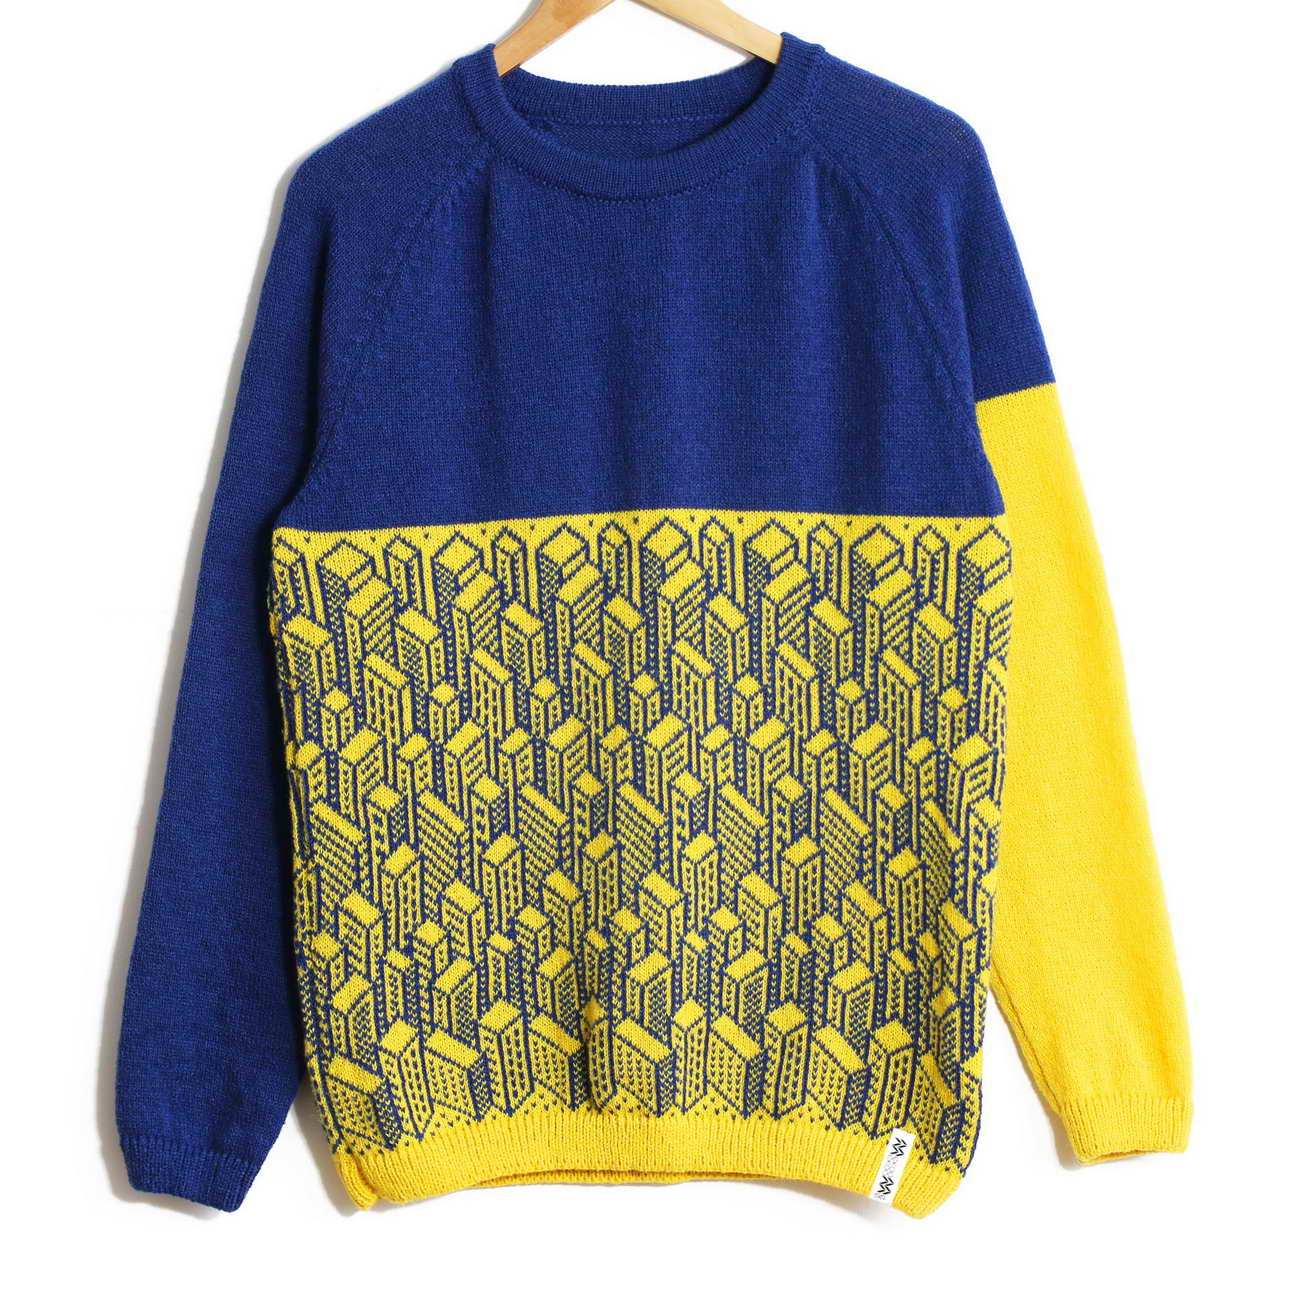 sweater city blue top yellow bottom